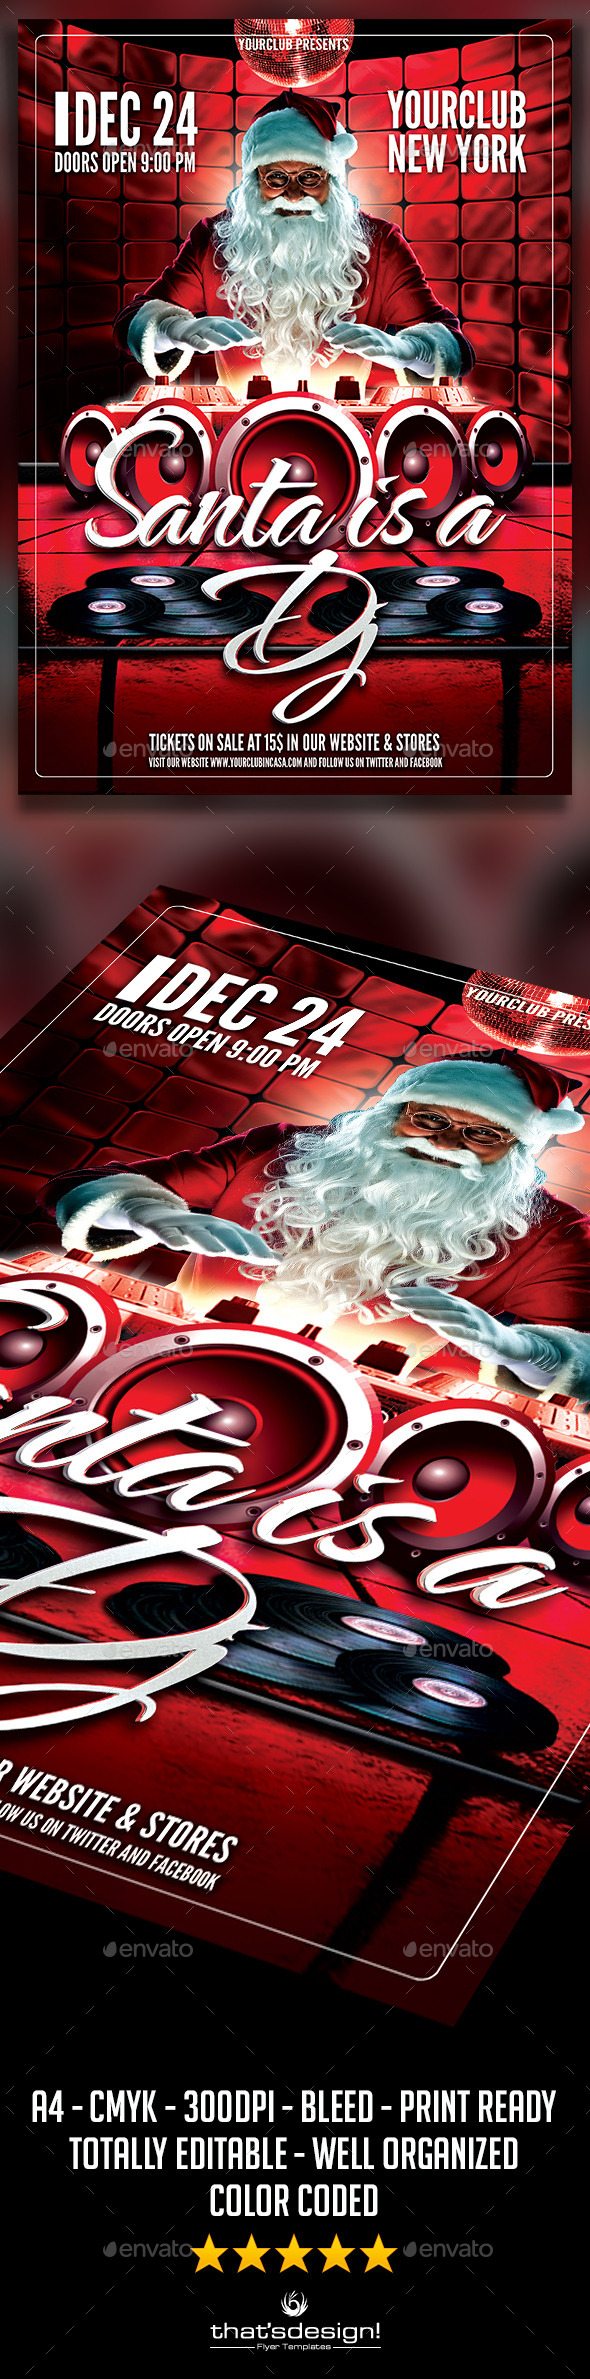 Santa is a DJ Flyer Template - Clubs & Parties Events